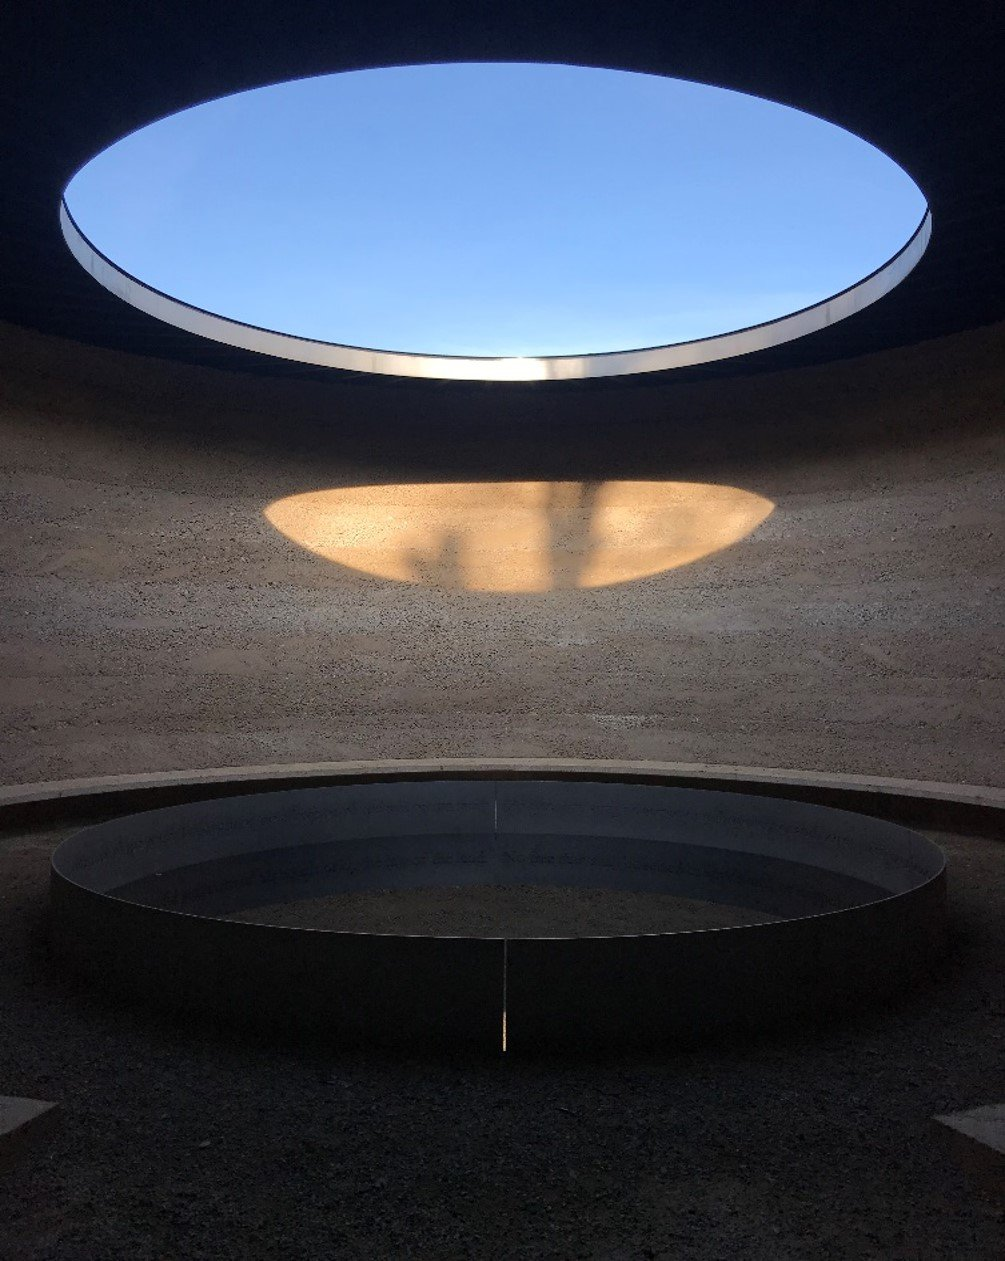 Magna Carta 'writ in water' project